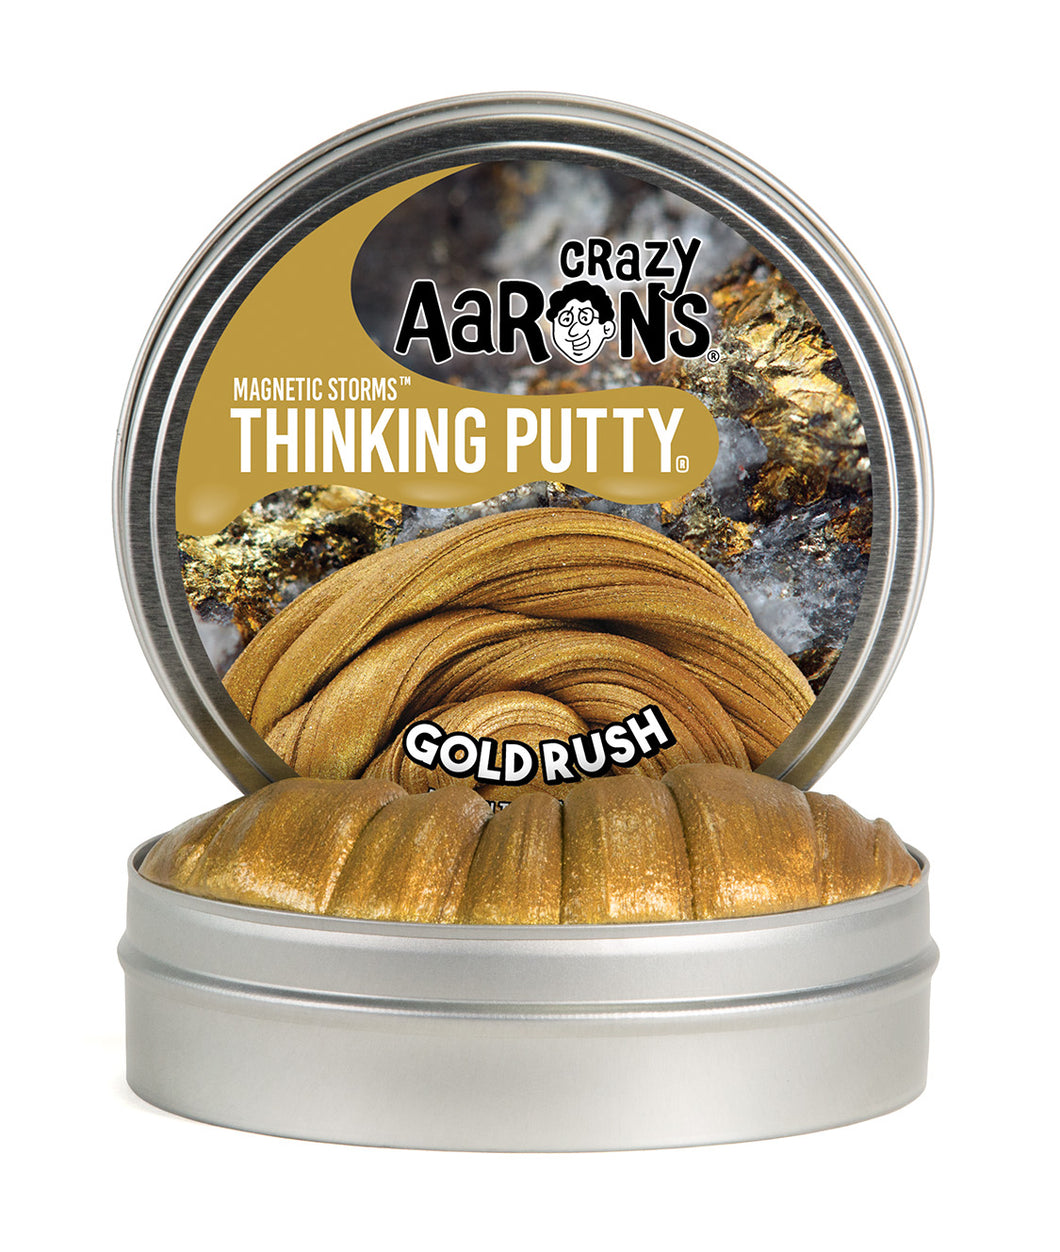 Crazy Aaron's Thinking Putty - Magnetic Storms - Gold Rush